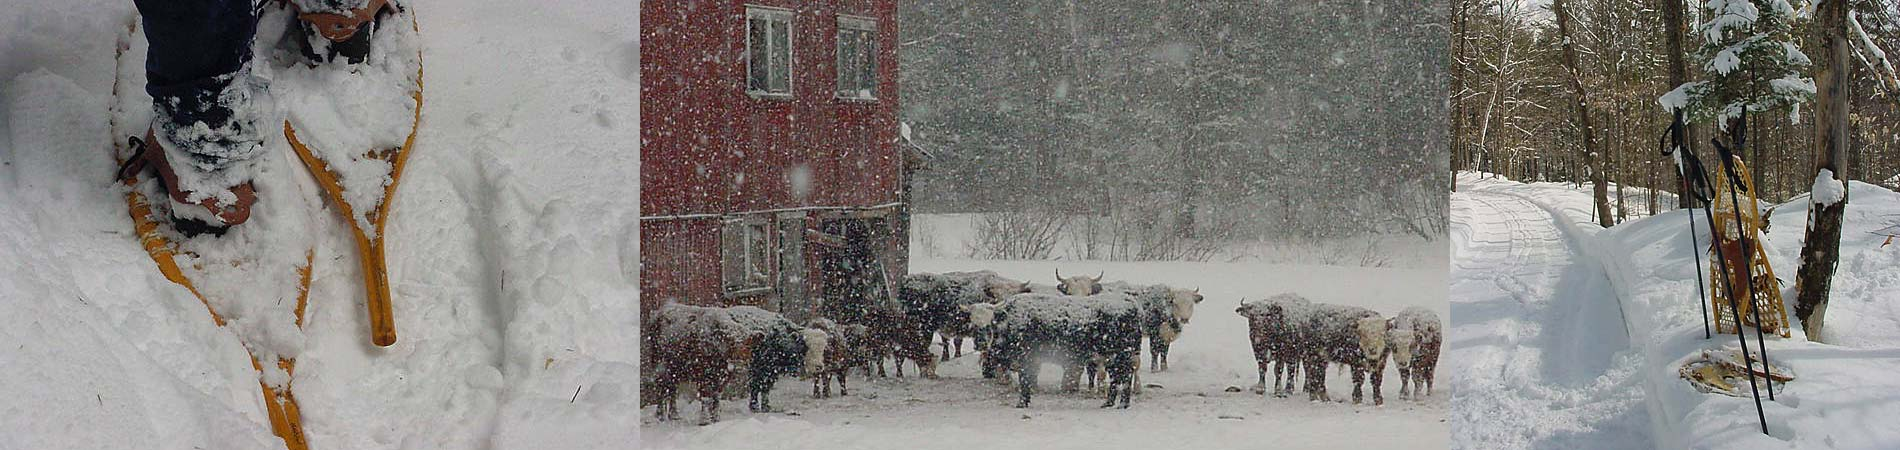 vermont-winter-cows-snowshoes